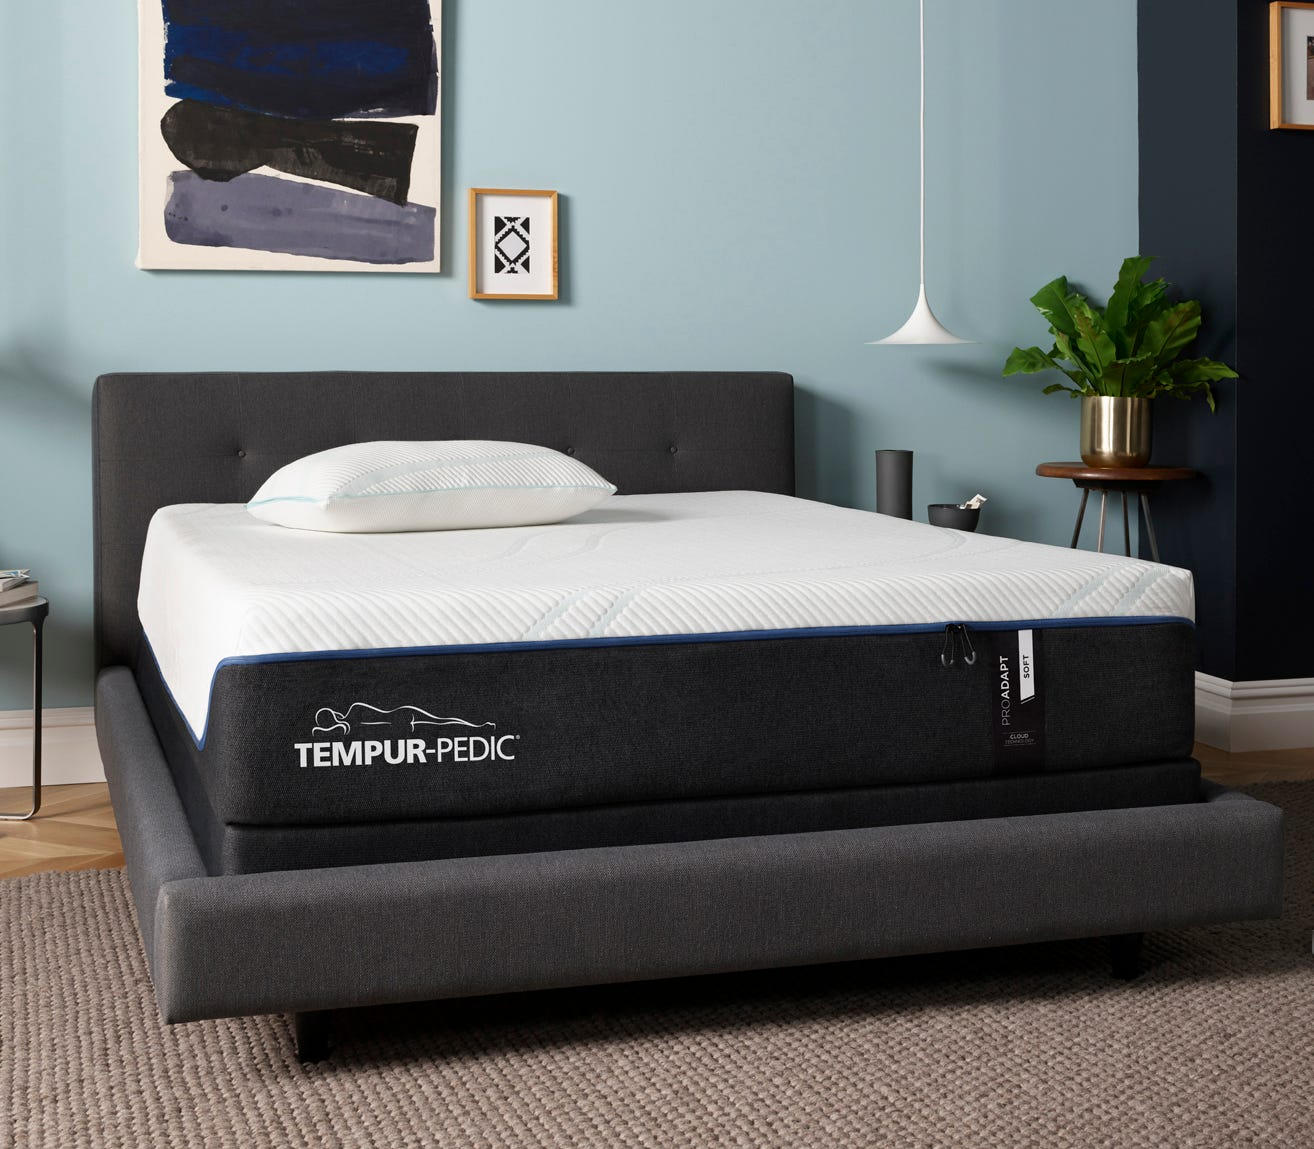 Tempurpedic Mattress Reviews >> Tempur-Pedic Pro Adapt Mattress Reviews